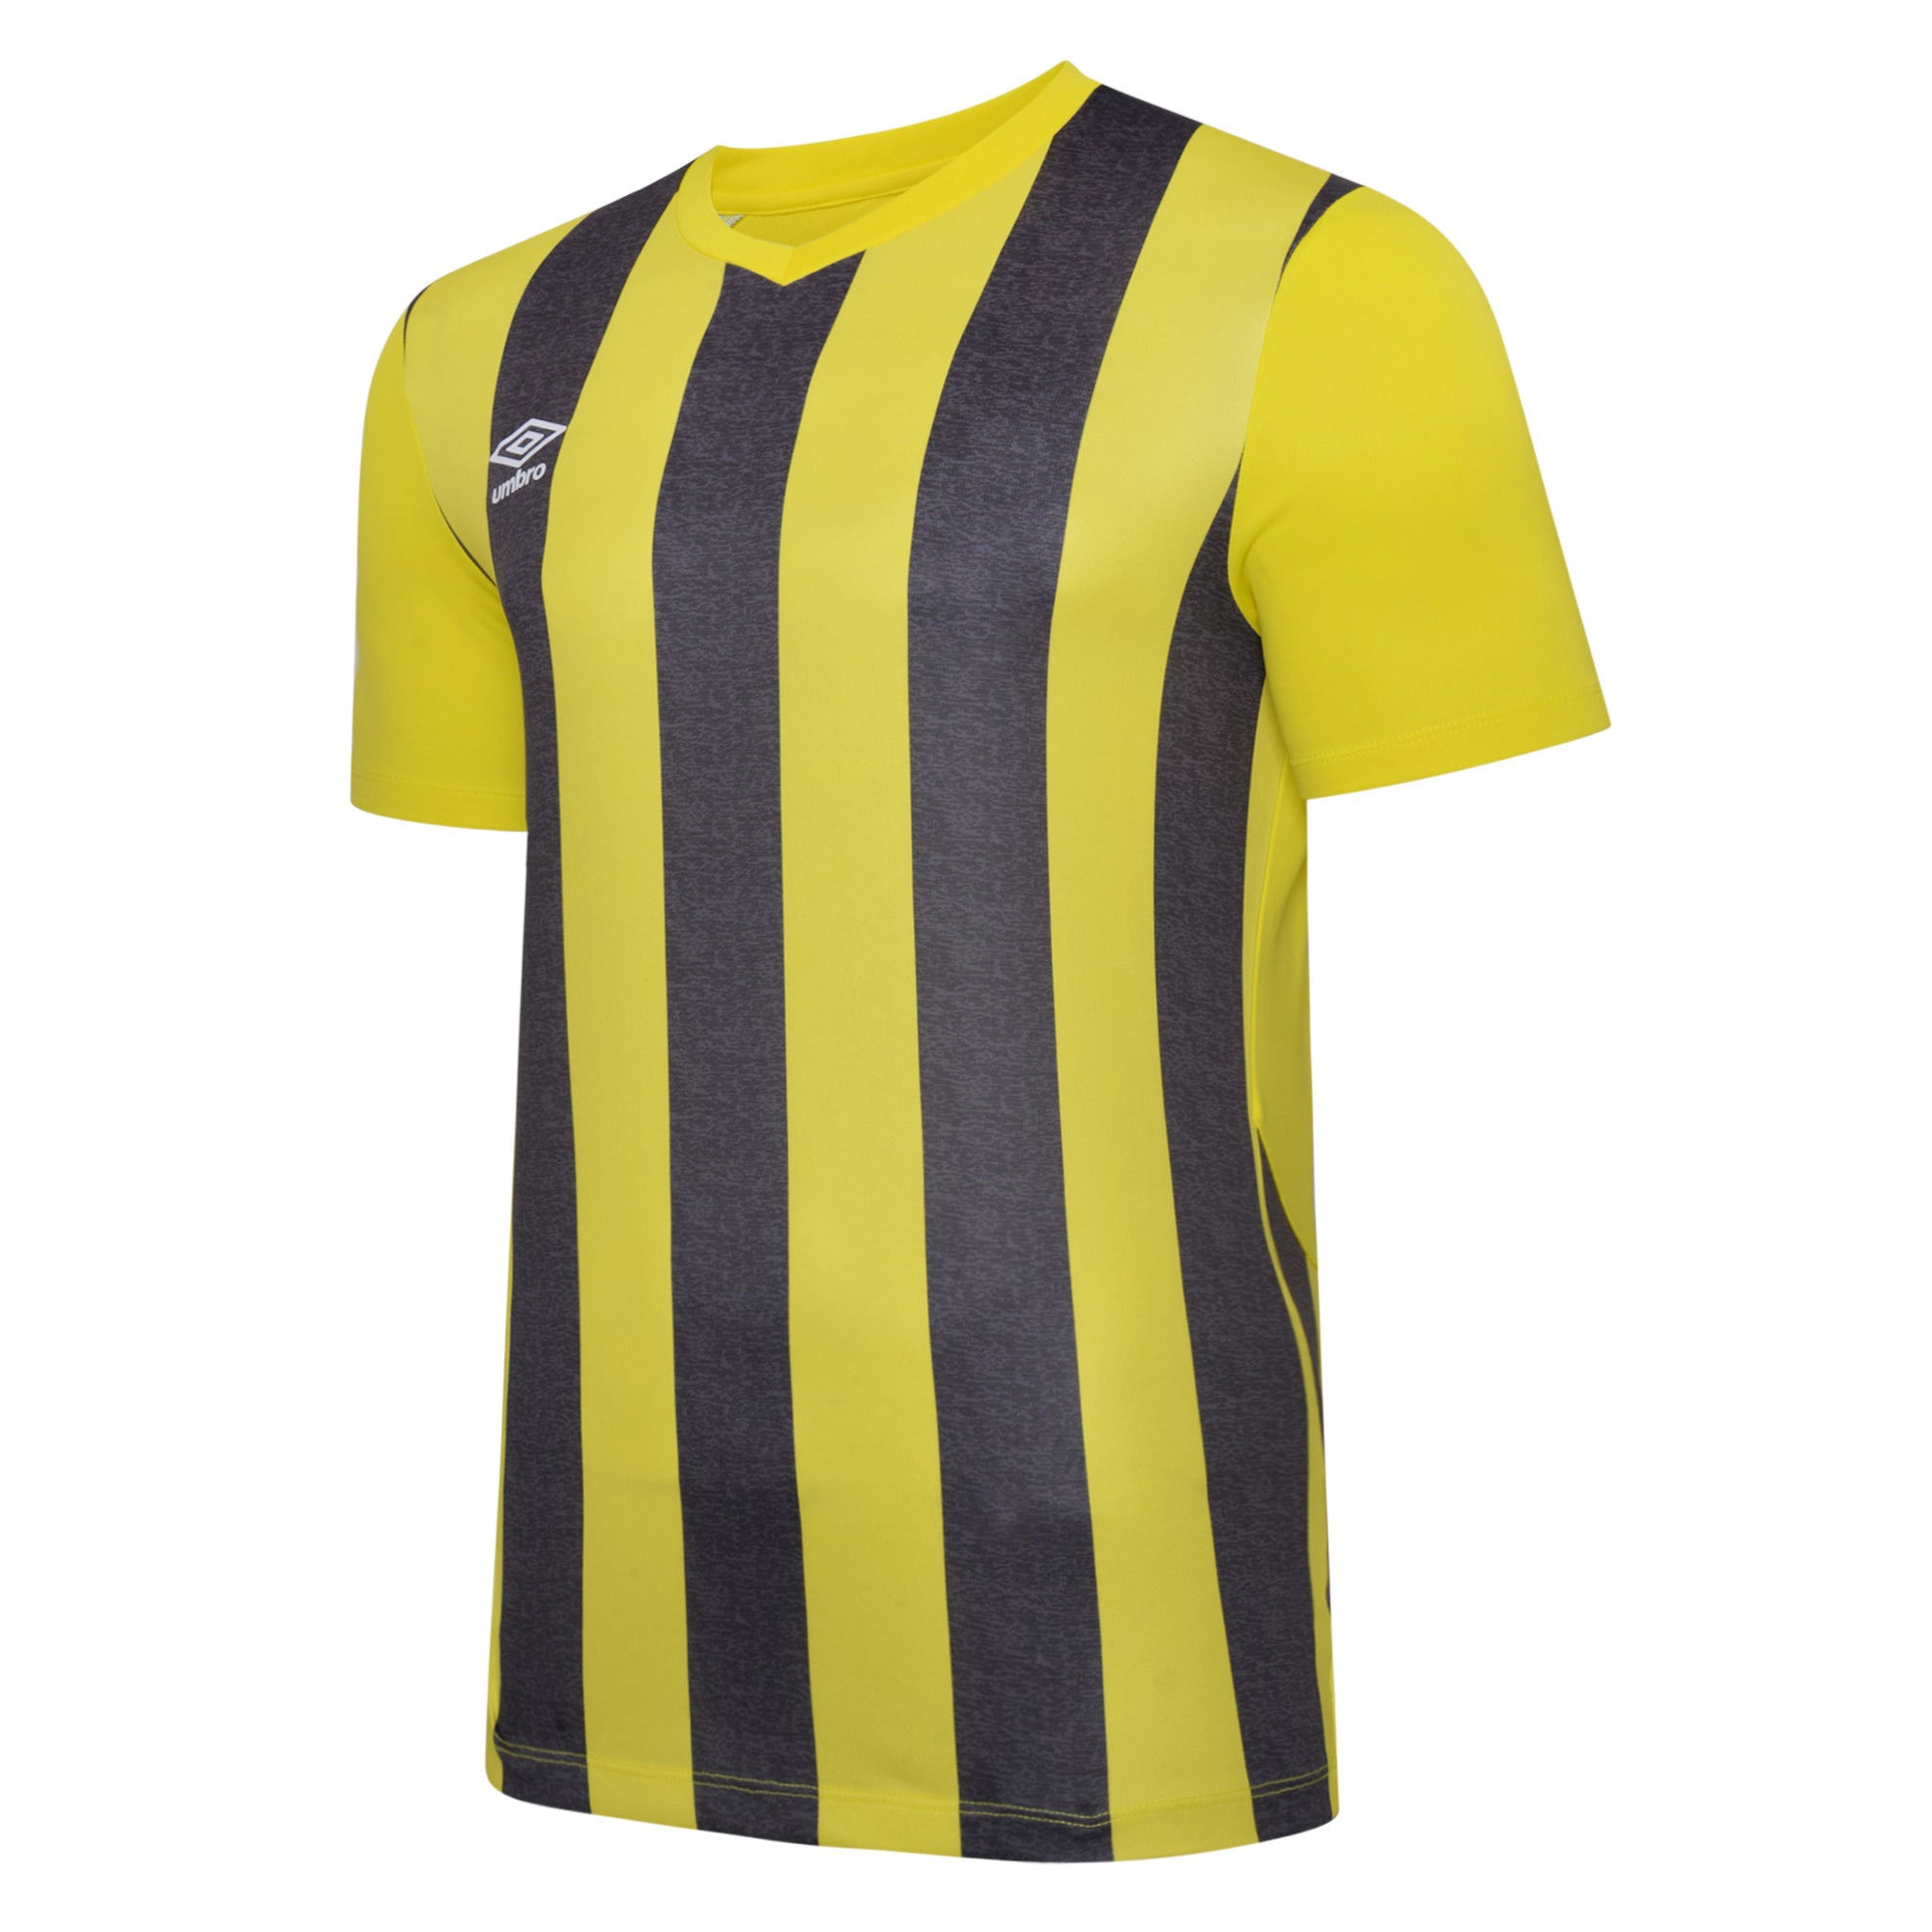 Umbro Ramone Jersey SS - Blazing Yellow/Carbon